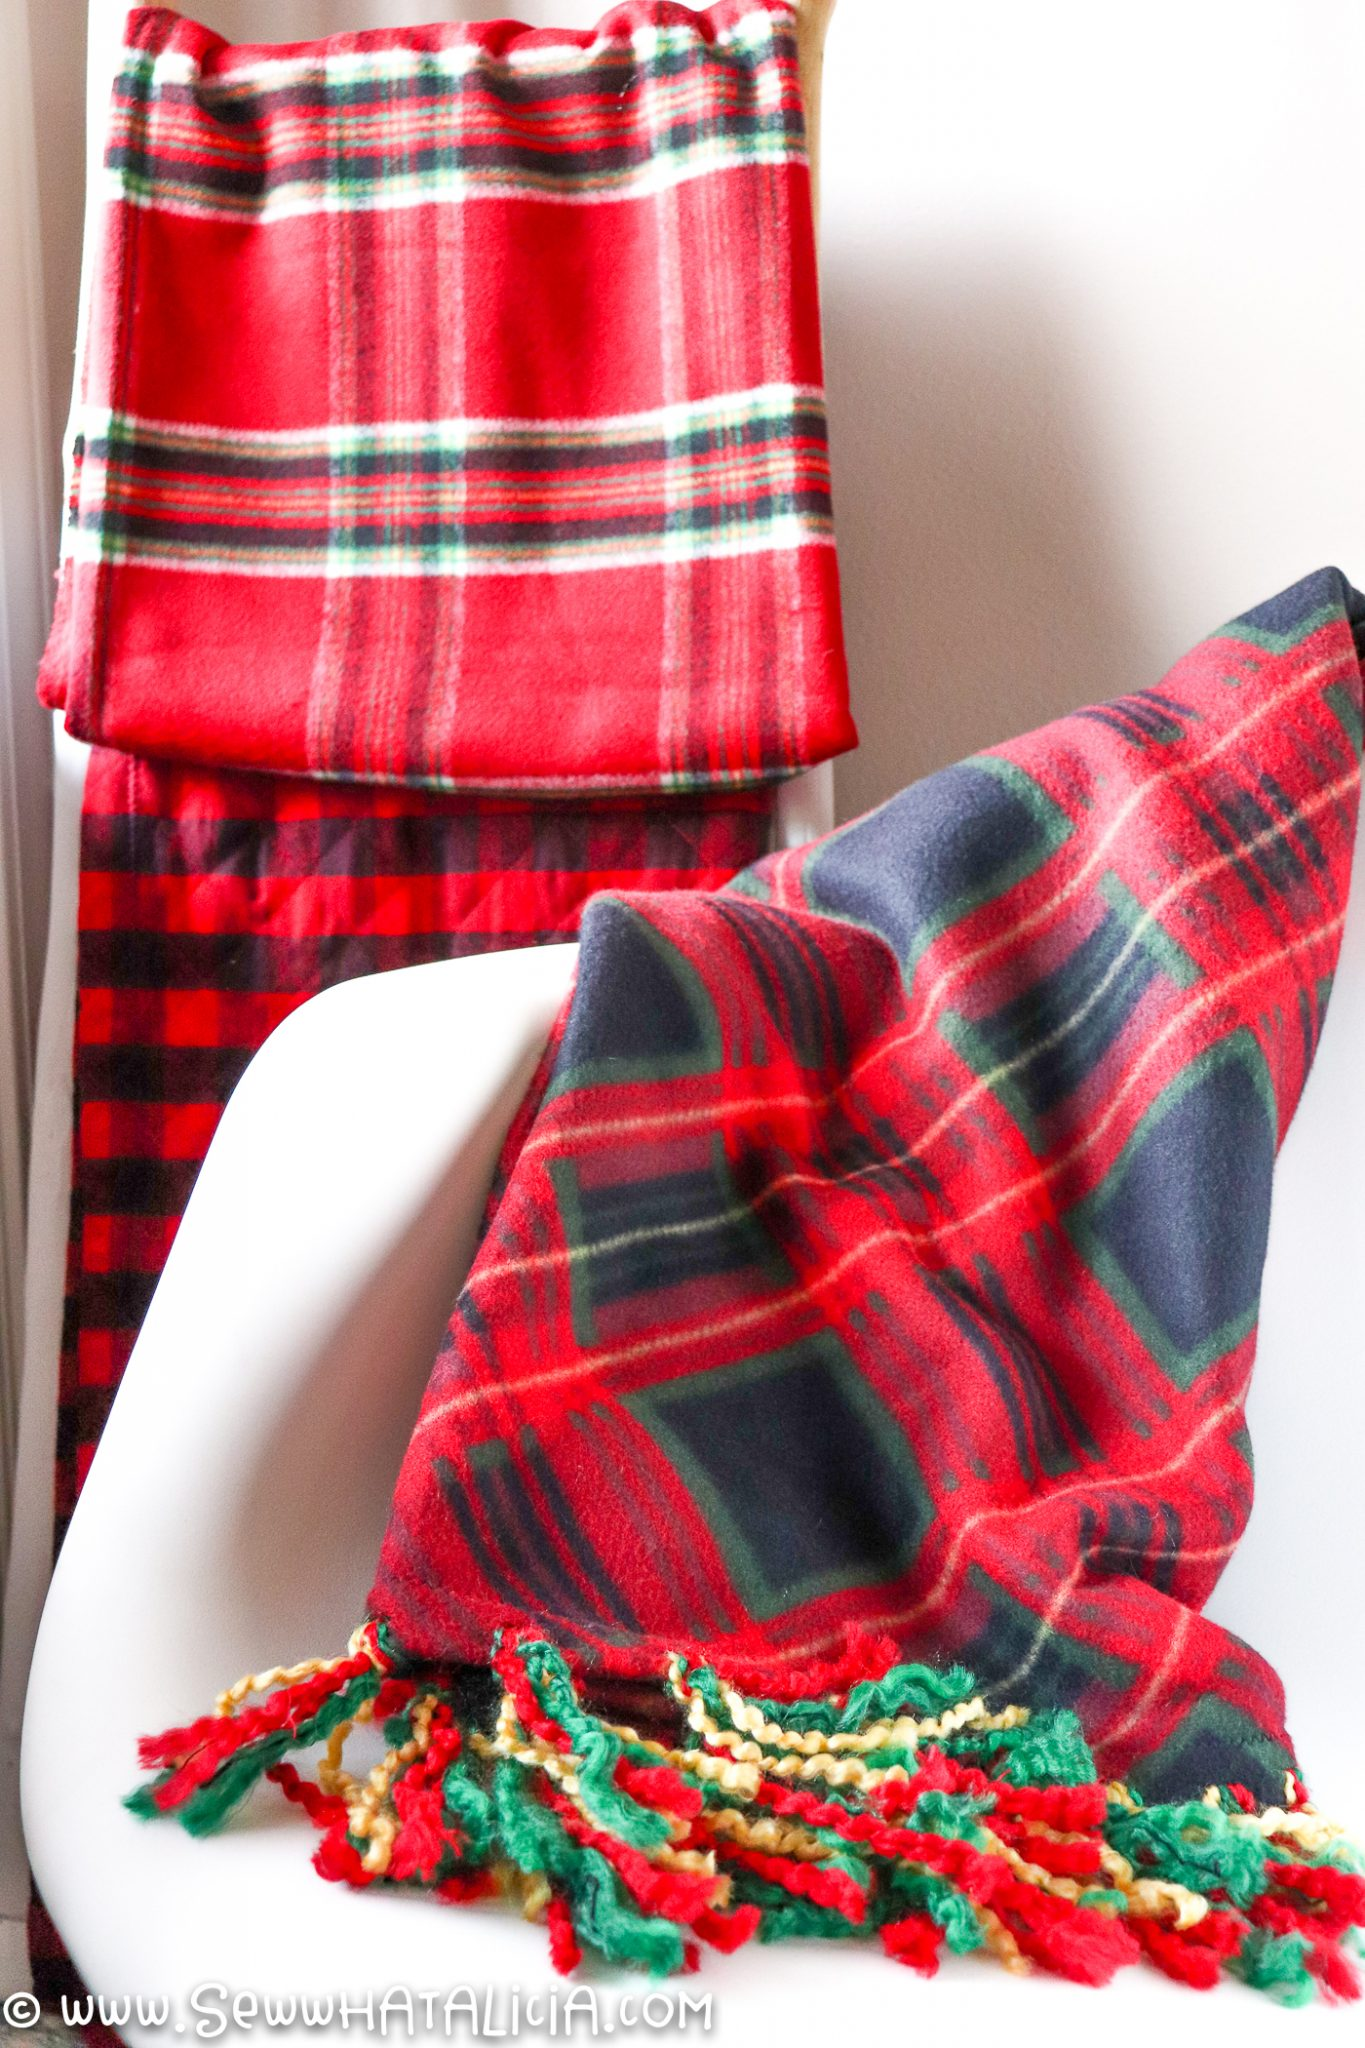 fleece blanket with fringe on white chair with plaid blankets on ladder in background